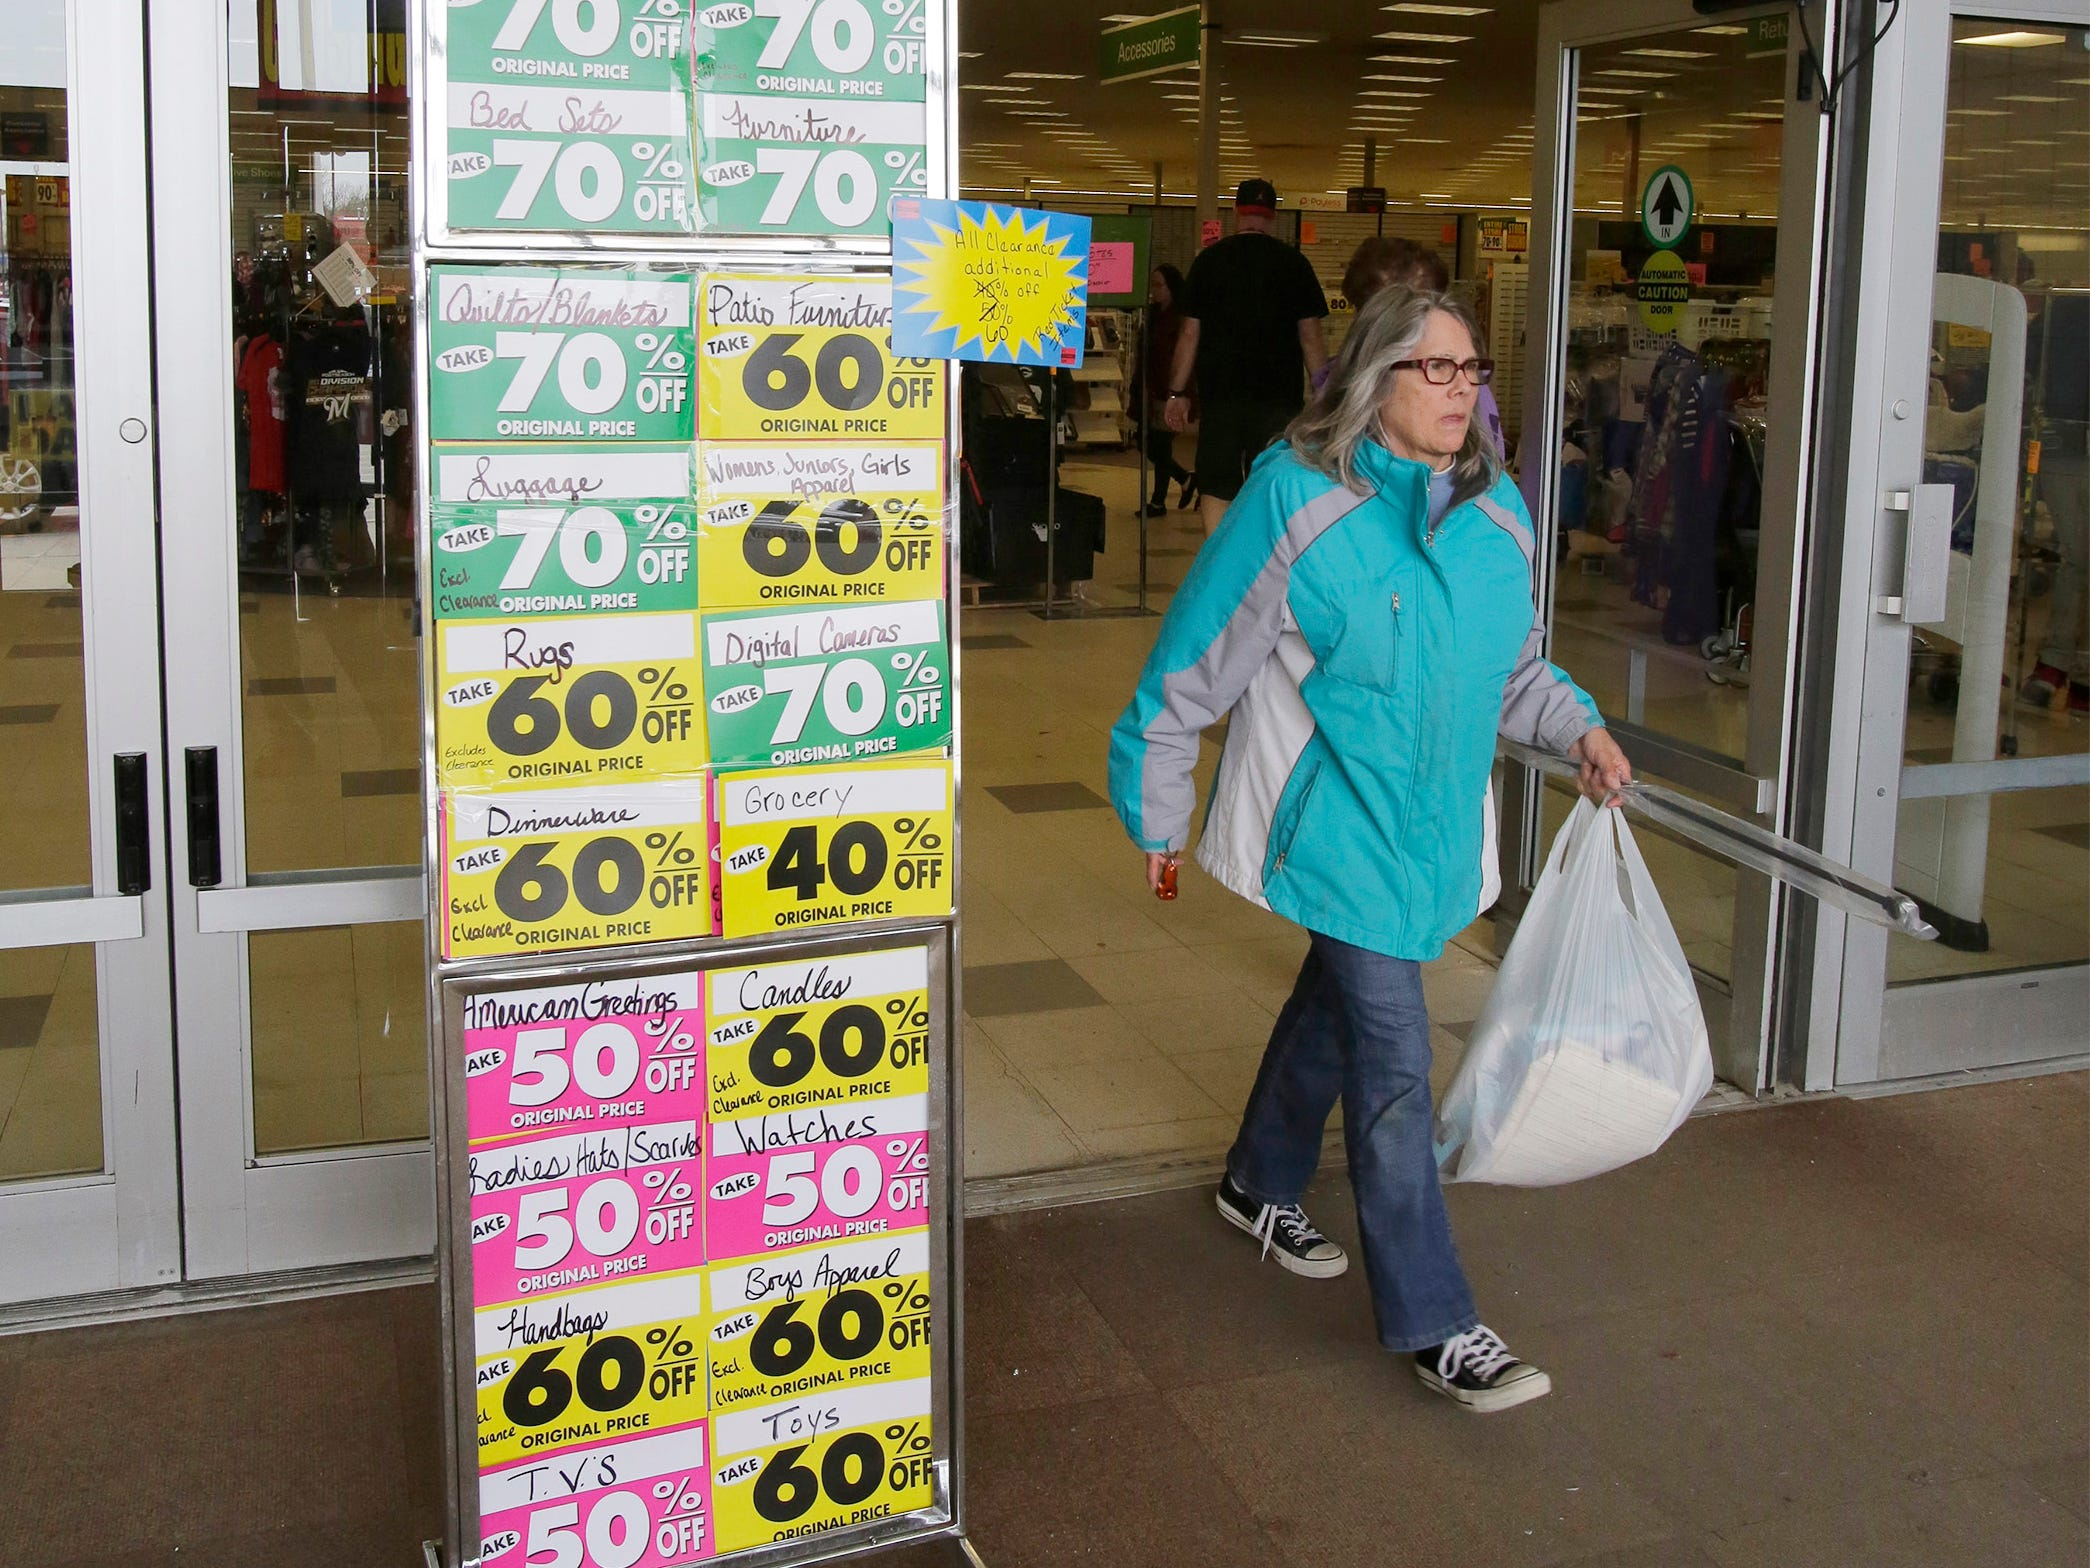 With signs indicating the closing store discounts, a woman leaves ShopKo with merchandise Saturday, May 11, 2019, in Sheboygan, Wis.